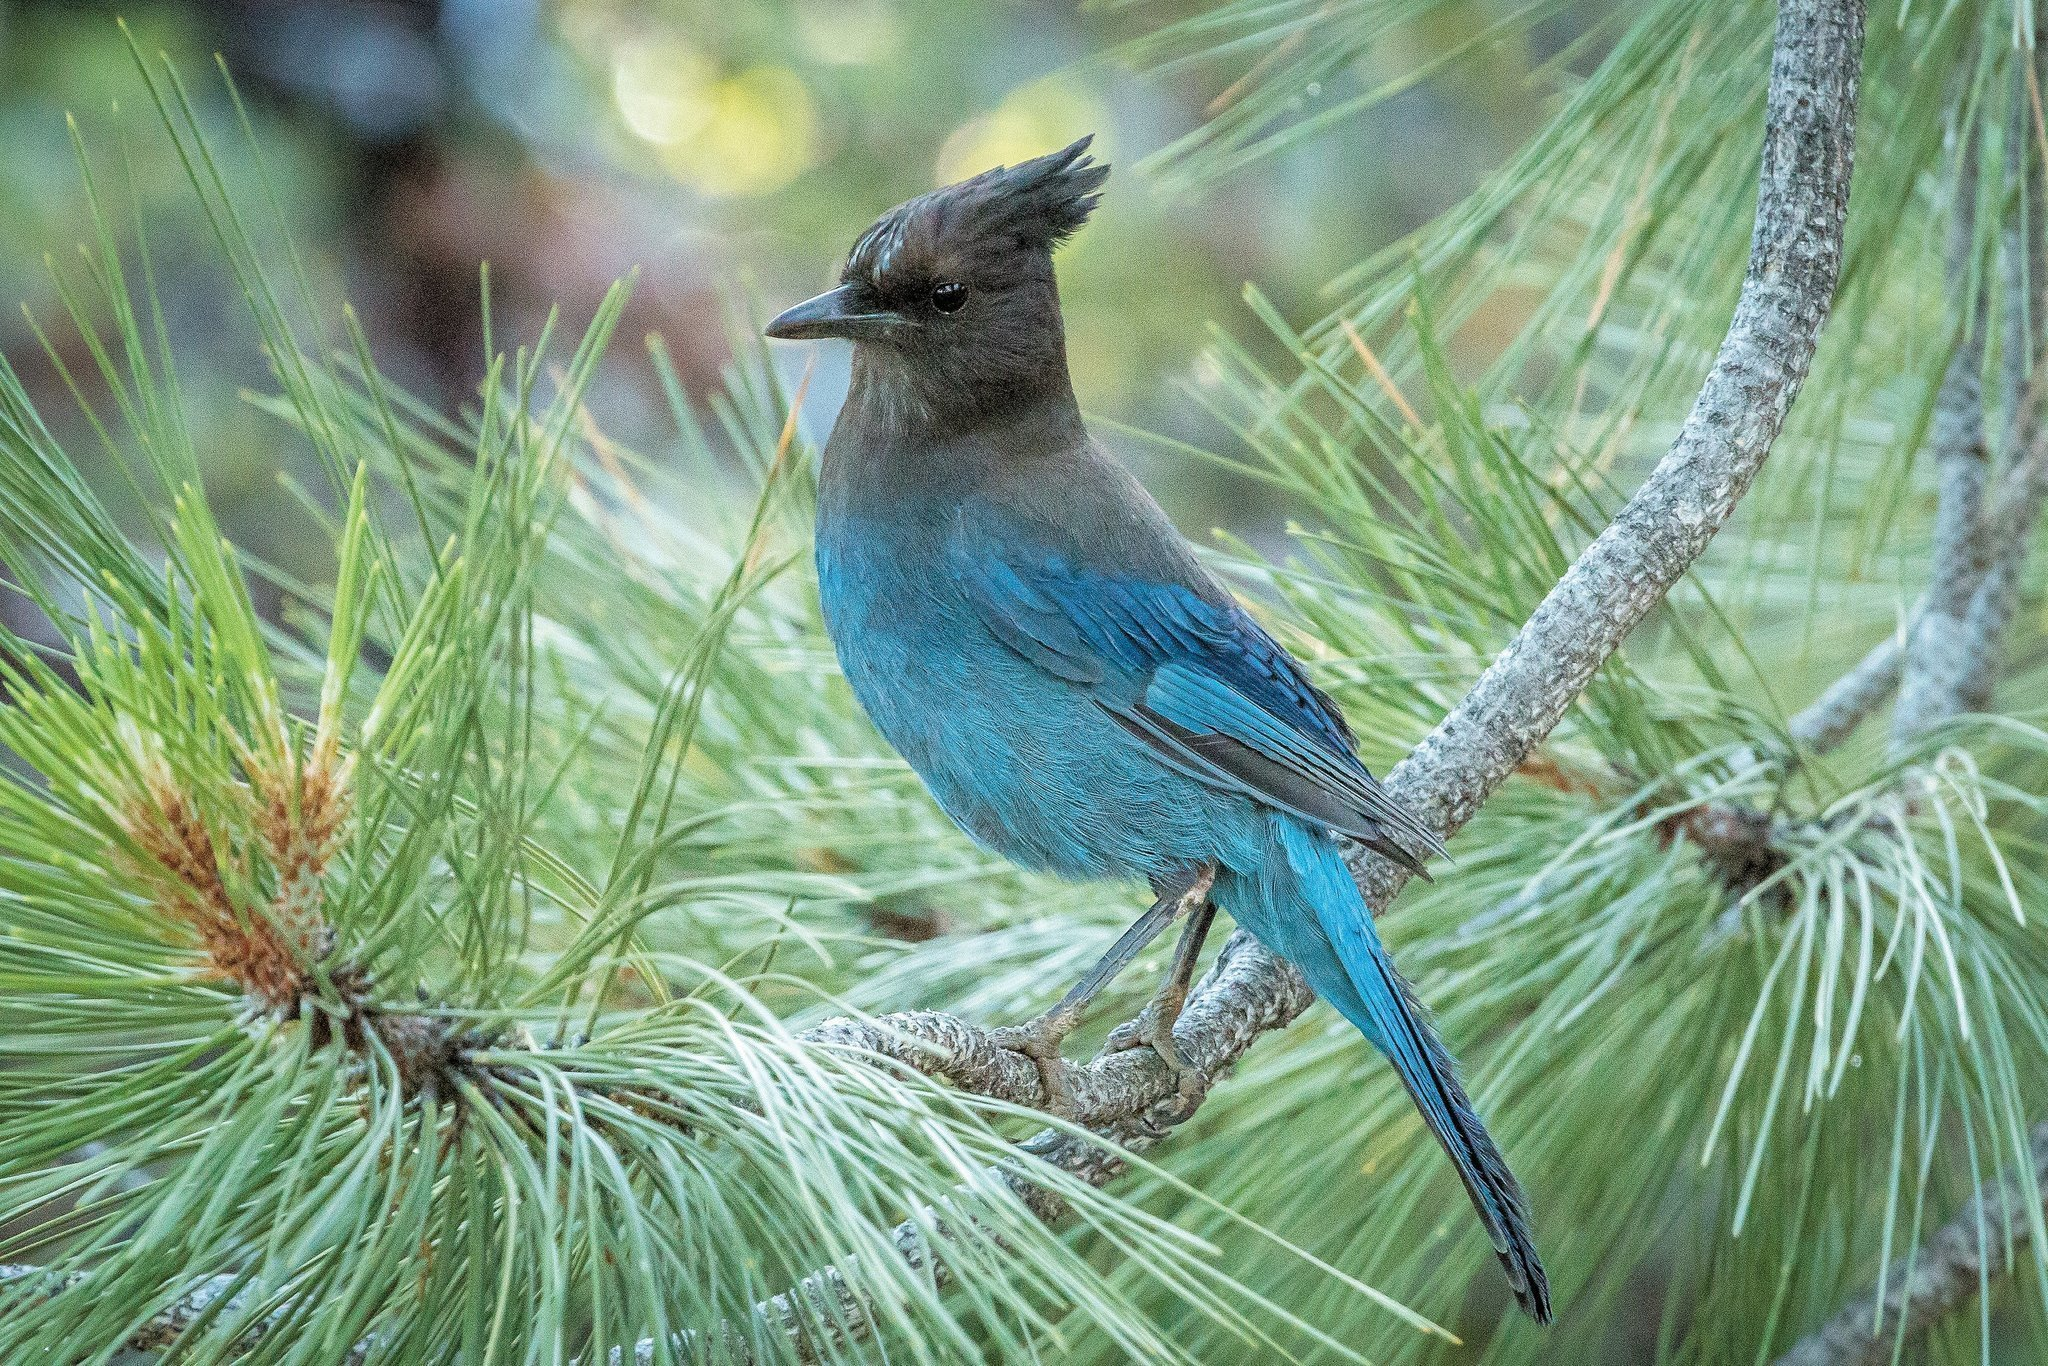 Two Blue Jay Species Are Common Sights For Bird Watchers